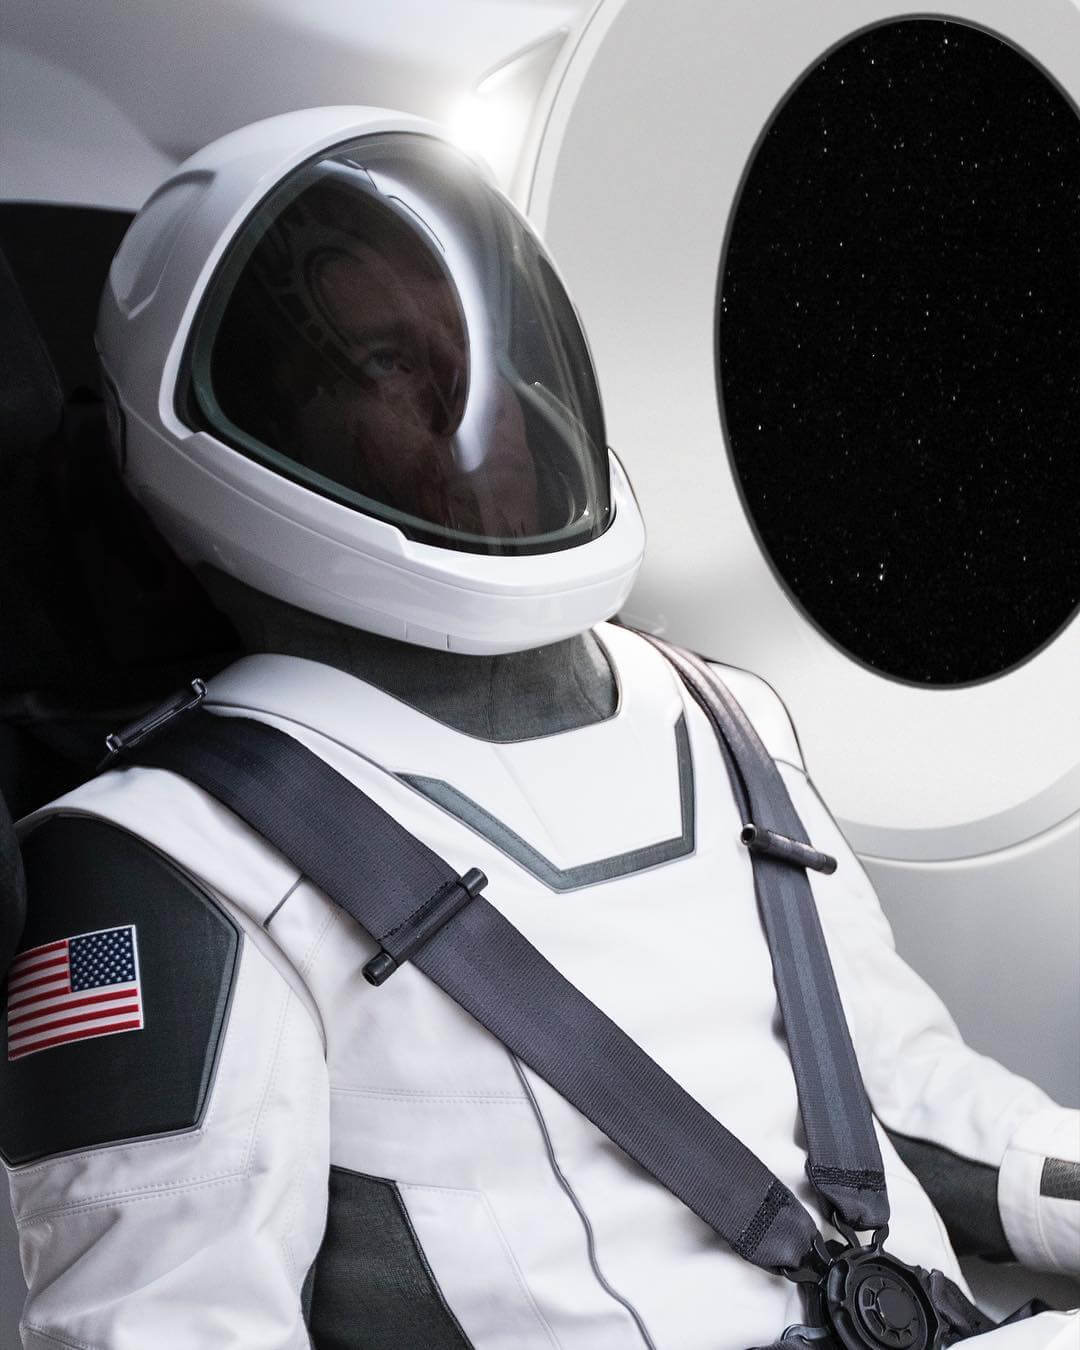 space x space suit first look 2 (1)